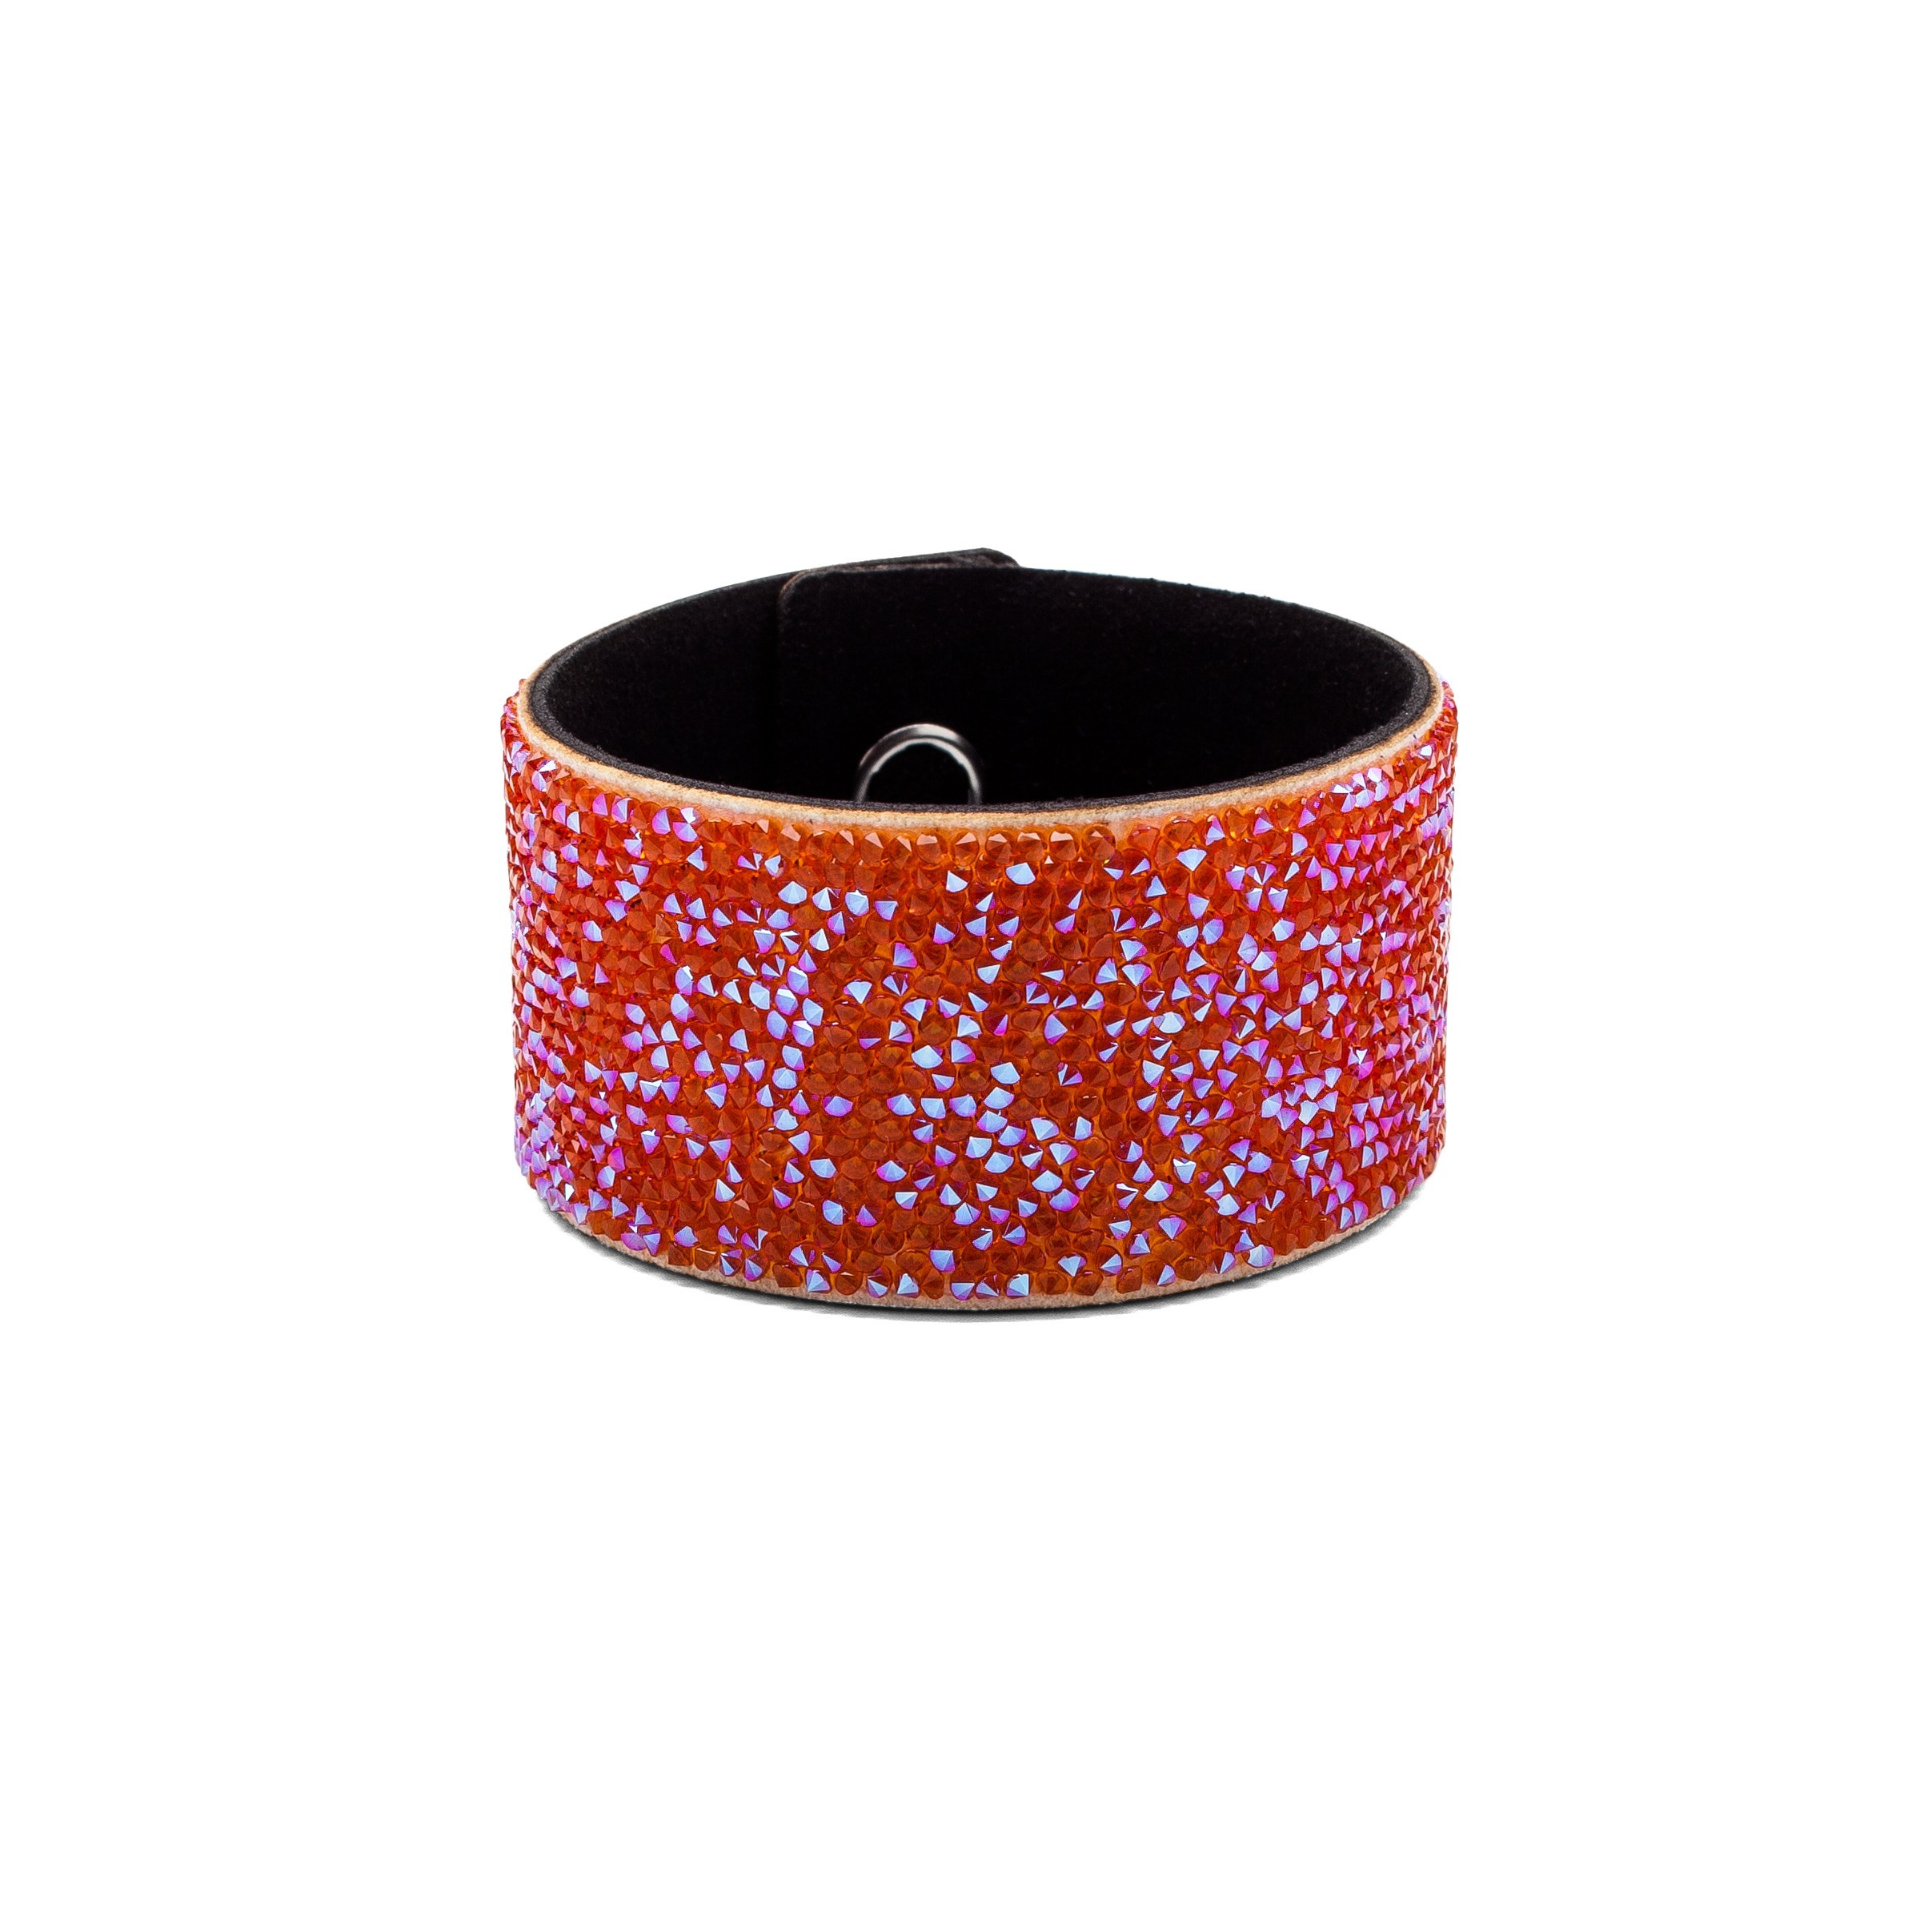 BRACELET WITH ALCANTARA AND SWAROVSKI CRY FINE ROCKS – MODEL 17